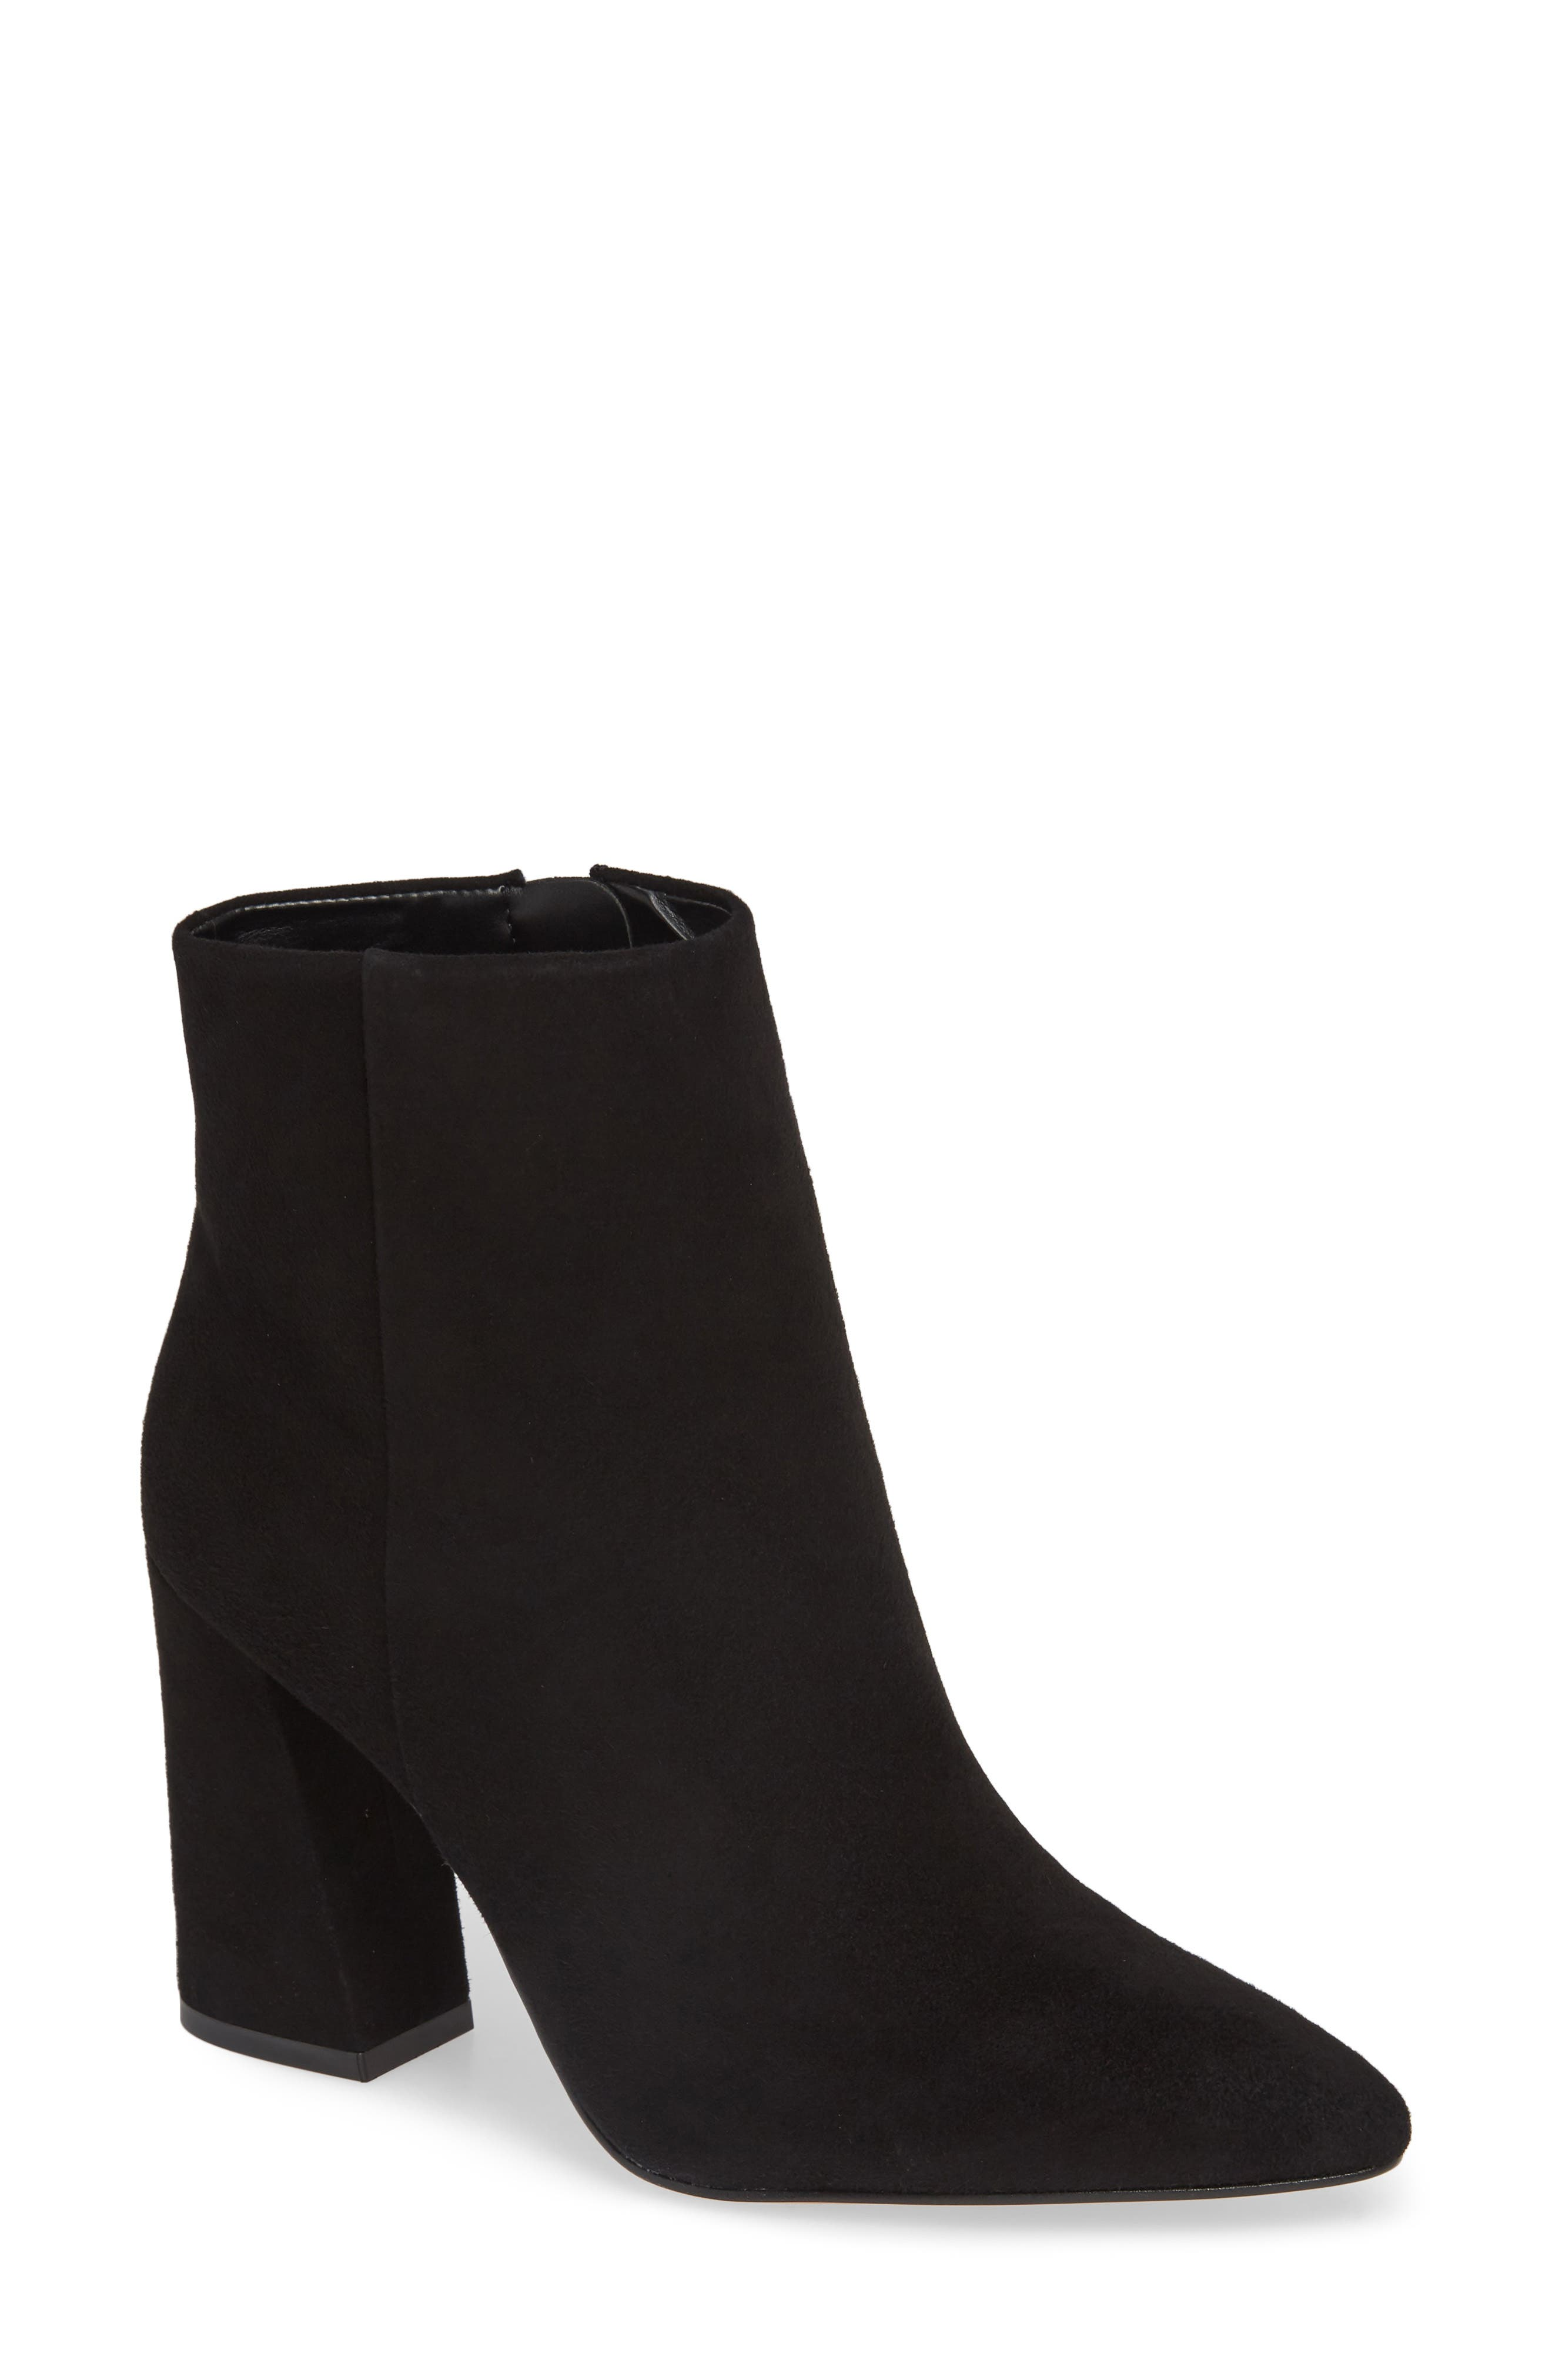 VINCE CAMUTO Thelmin Genuine Calf Hair Bootie, Main, color, 003